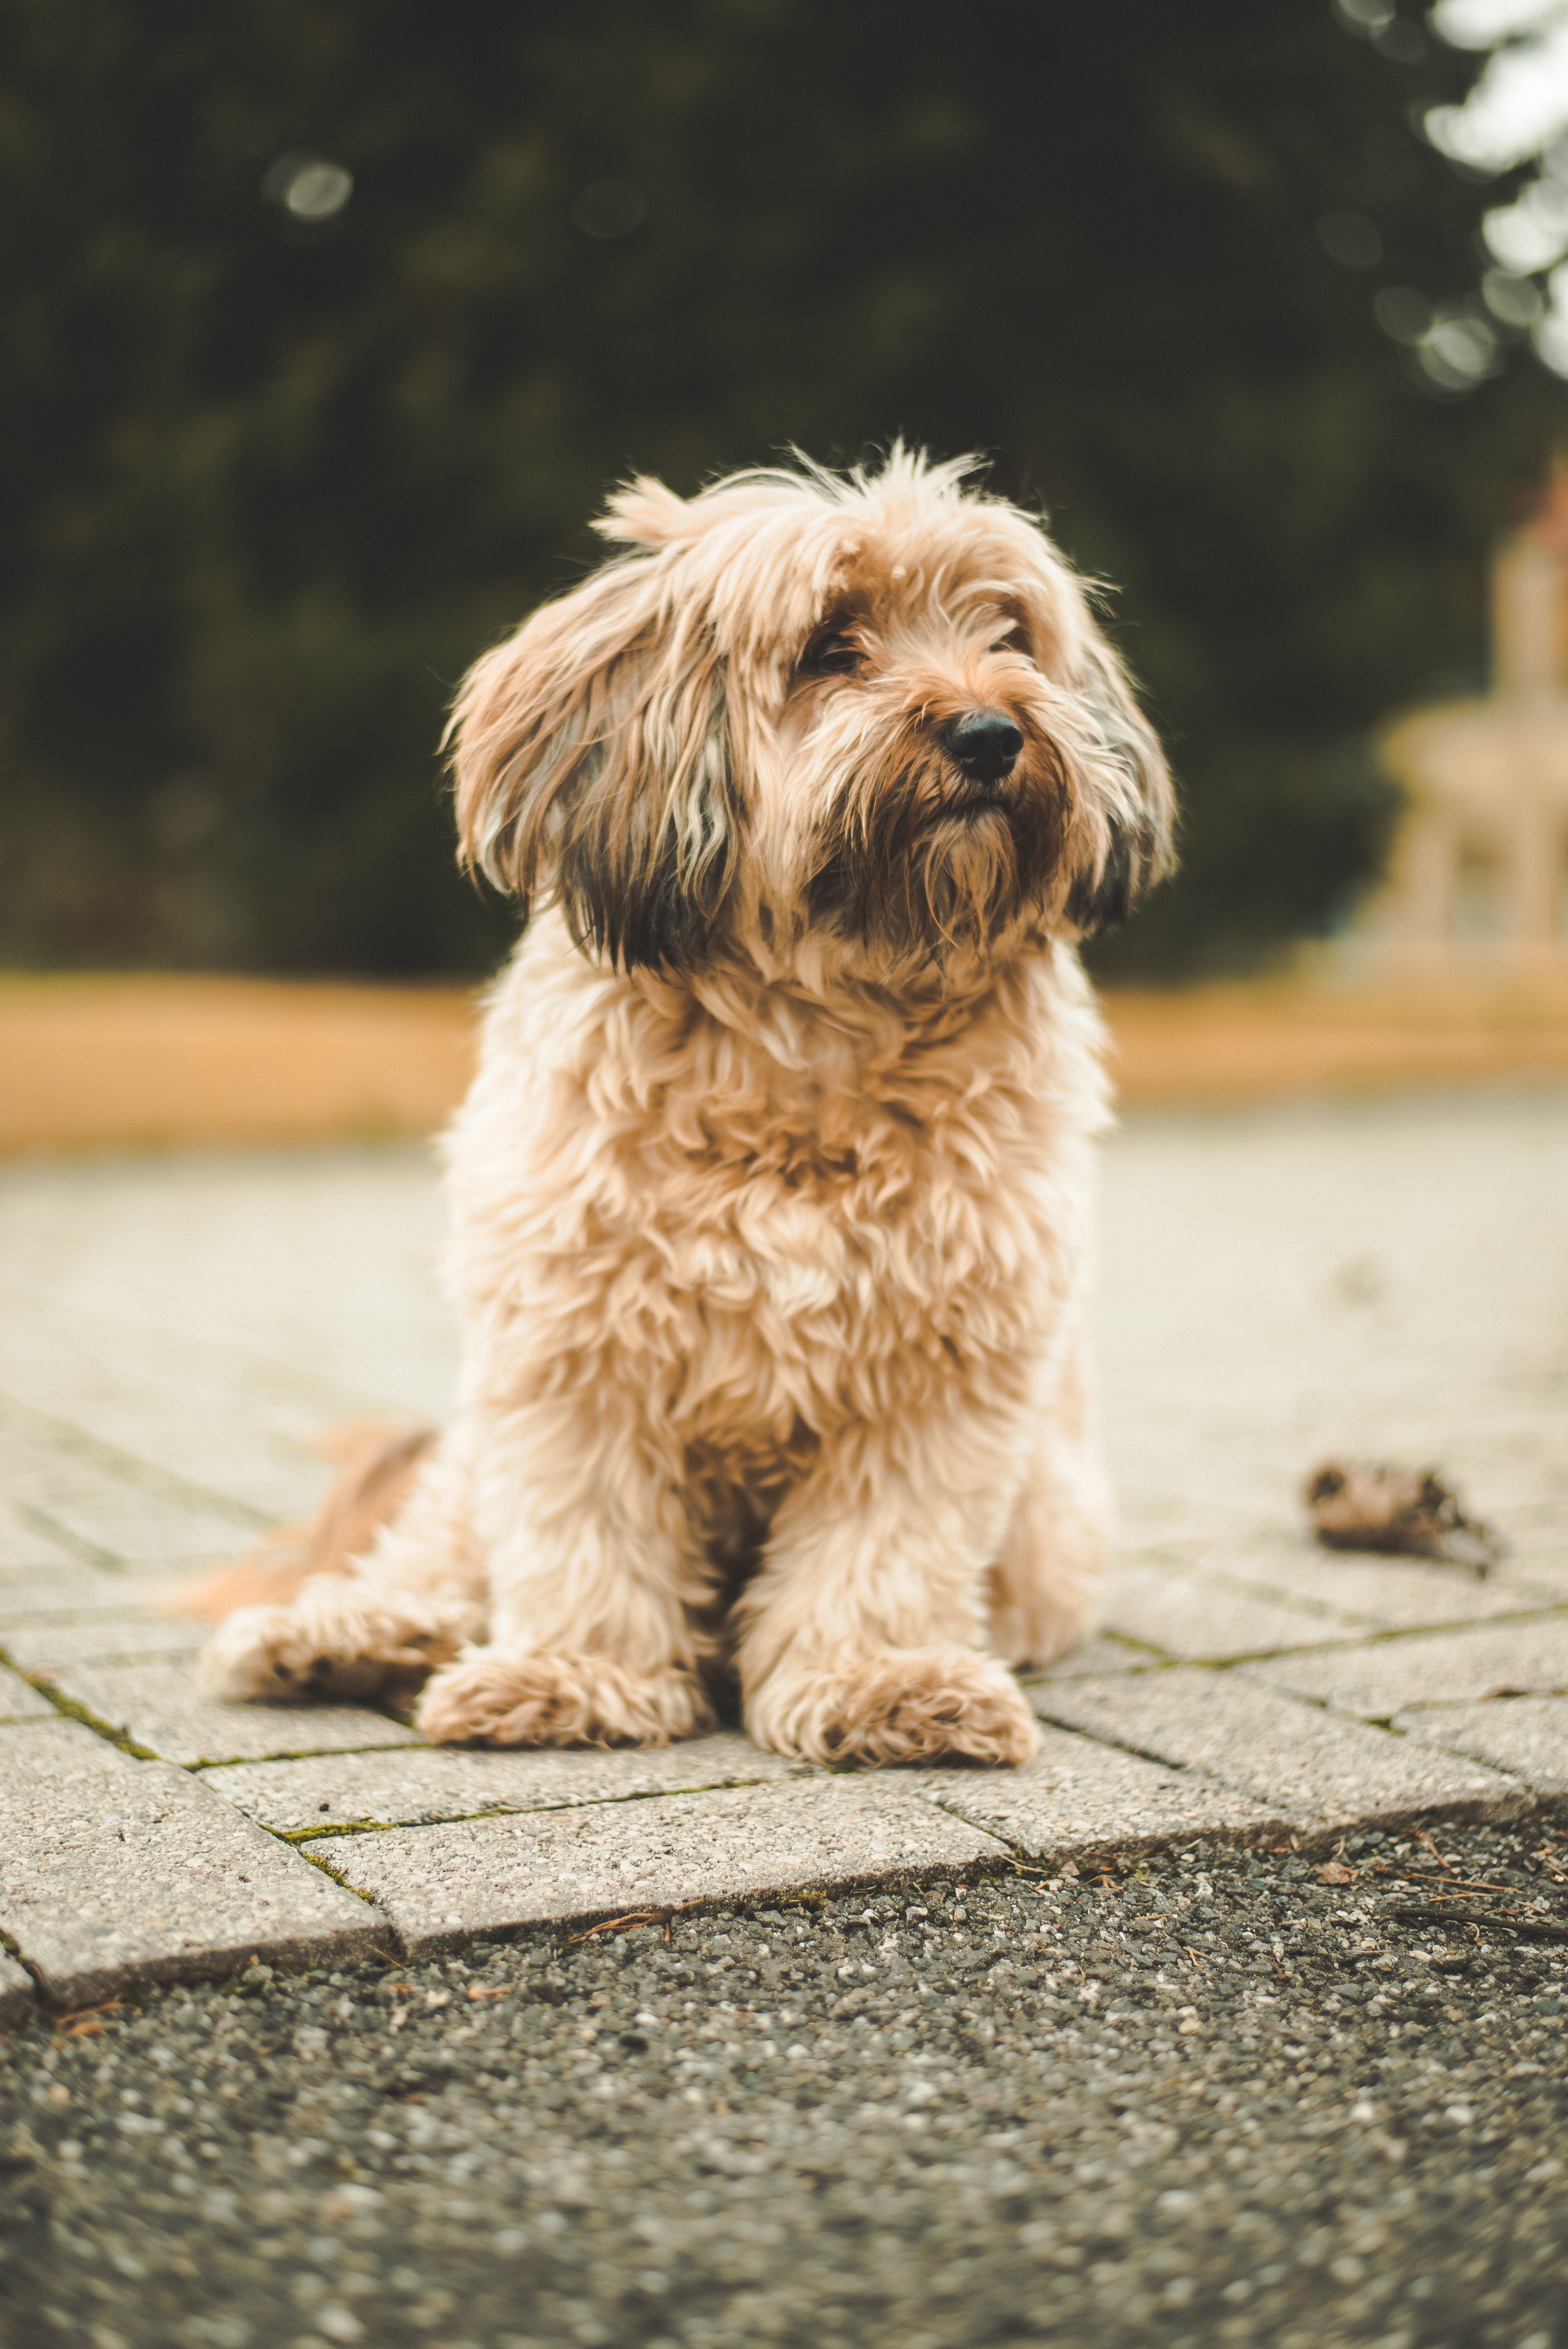 shallow focus photography of dog sitting on gray concrete flooring